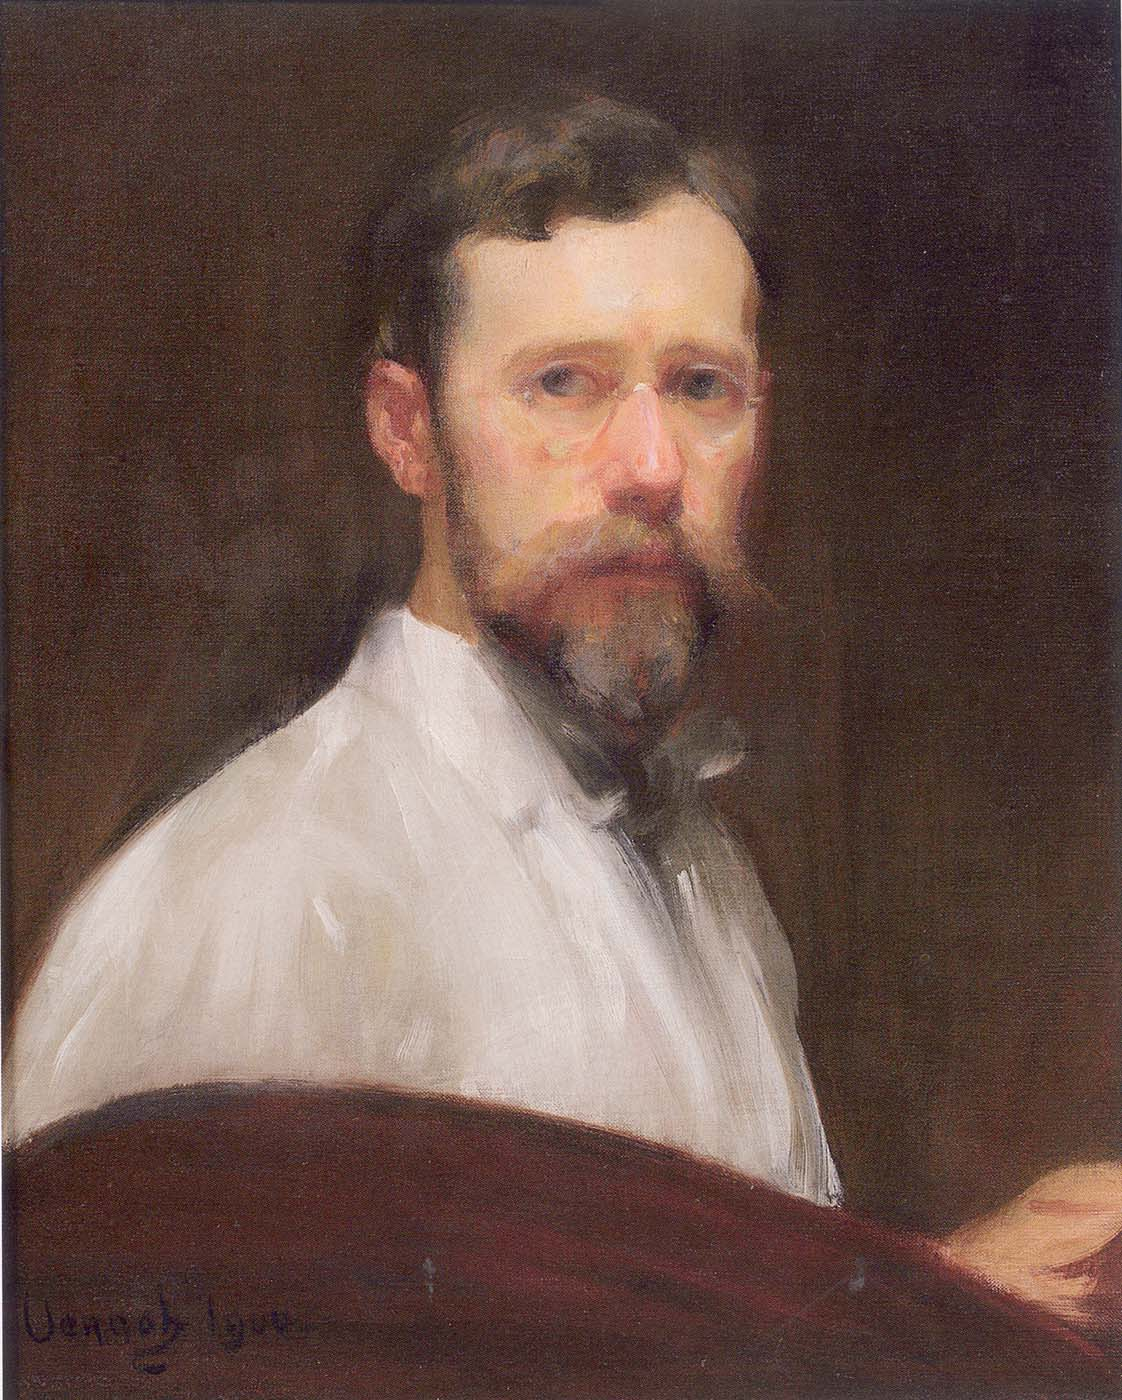 See the source image